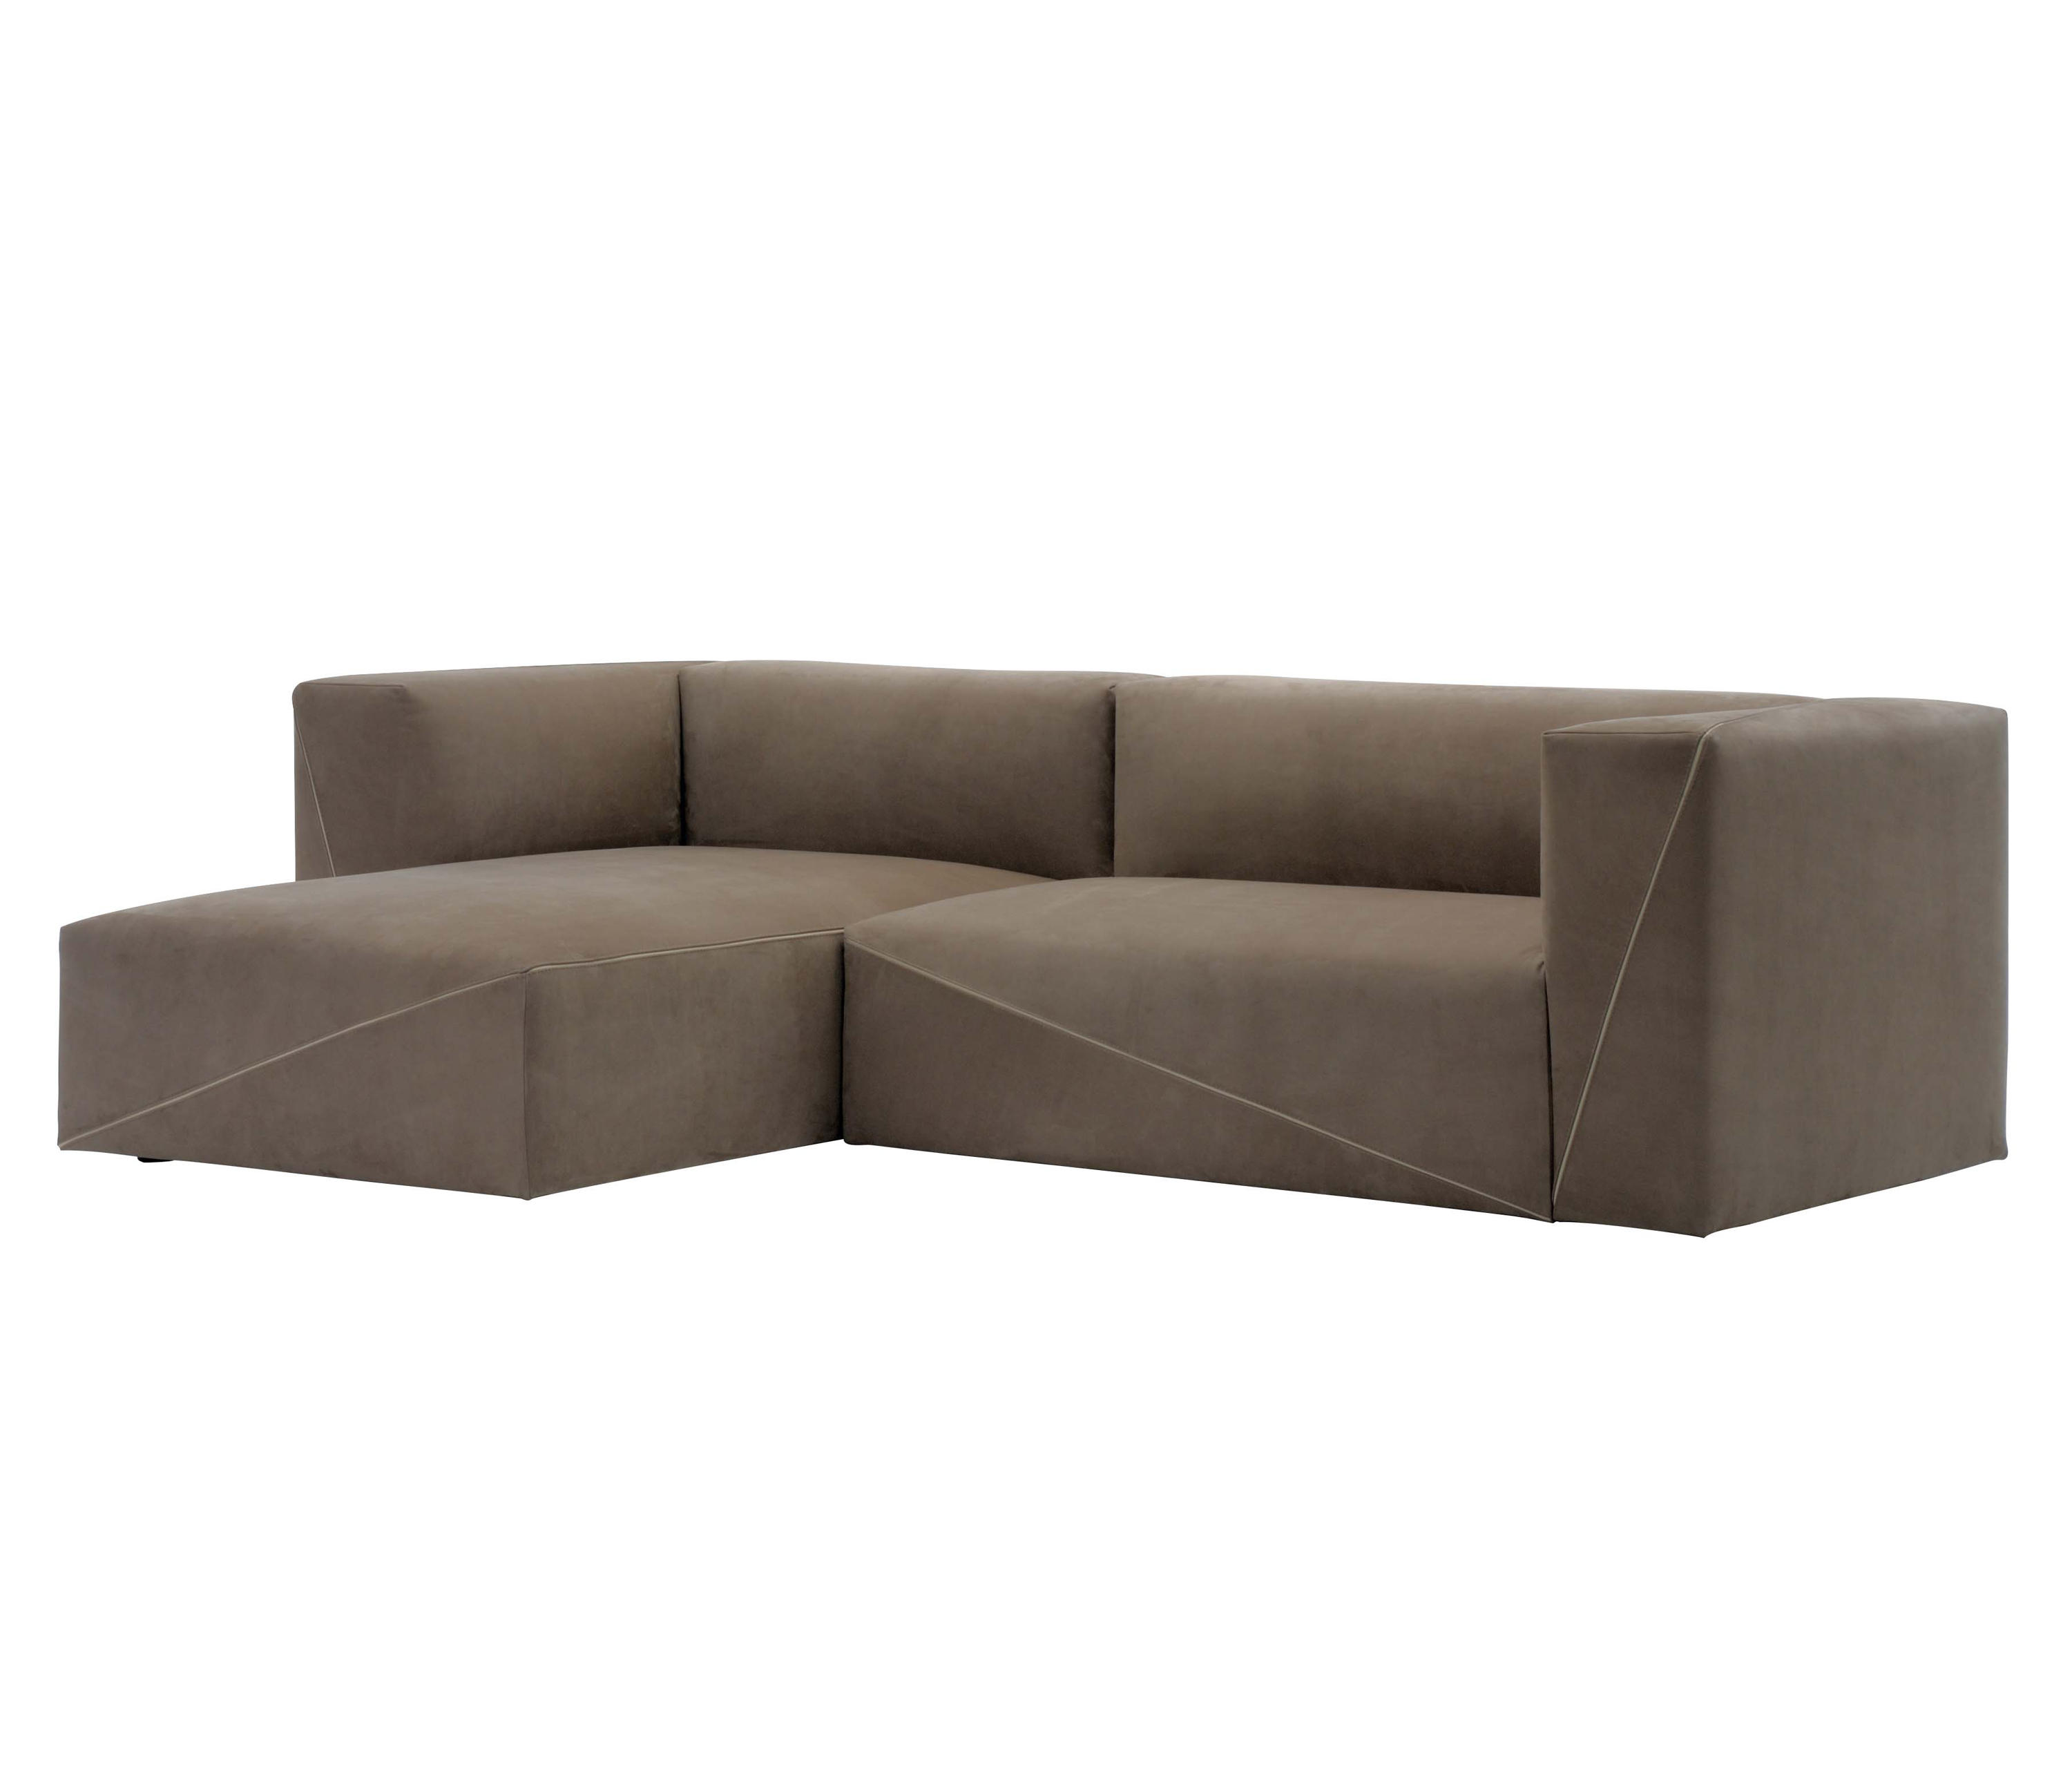 Diagonal chaise longue sectional sofa modular sofa for Chaise longue sofa